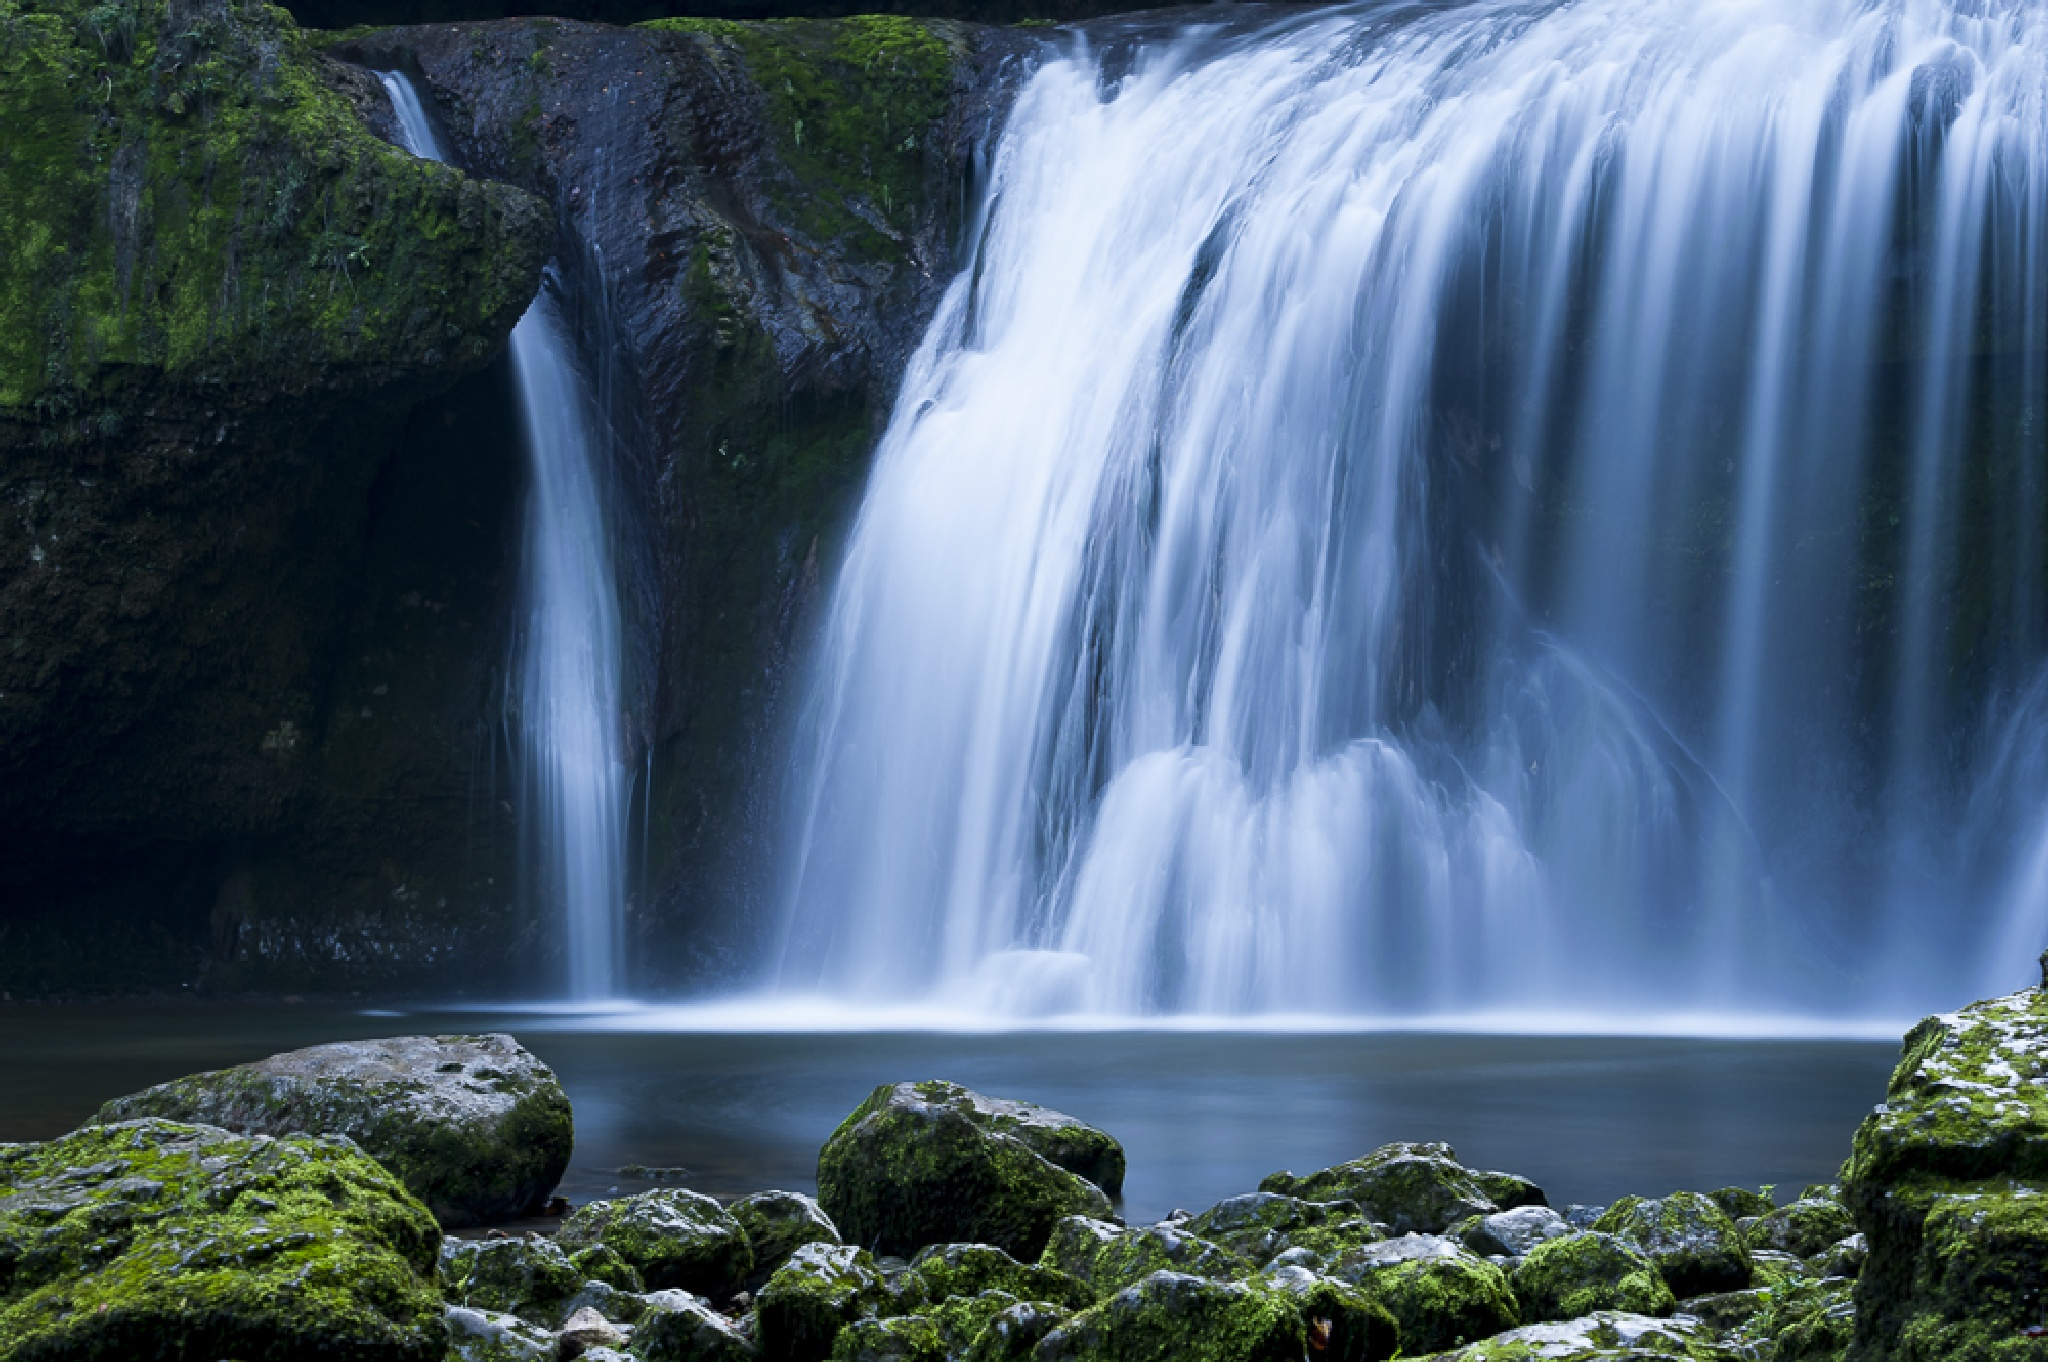 Cascade de la Billaude - Jura - France by Mayfly74